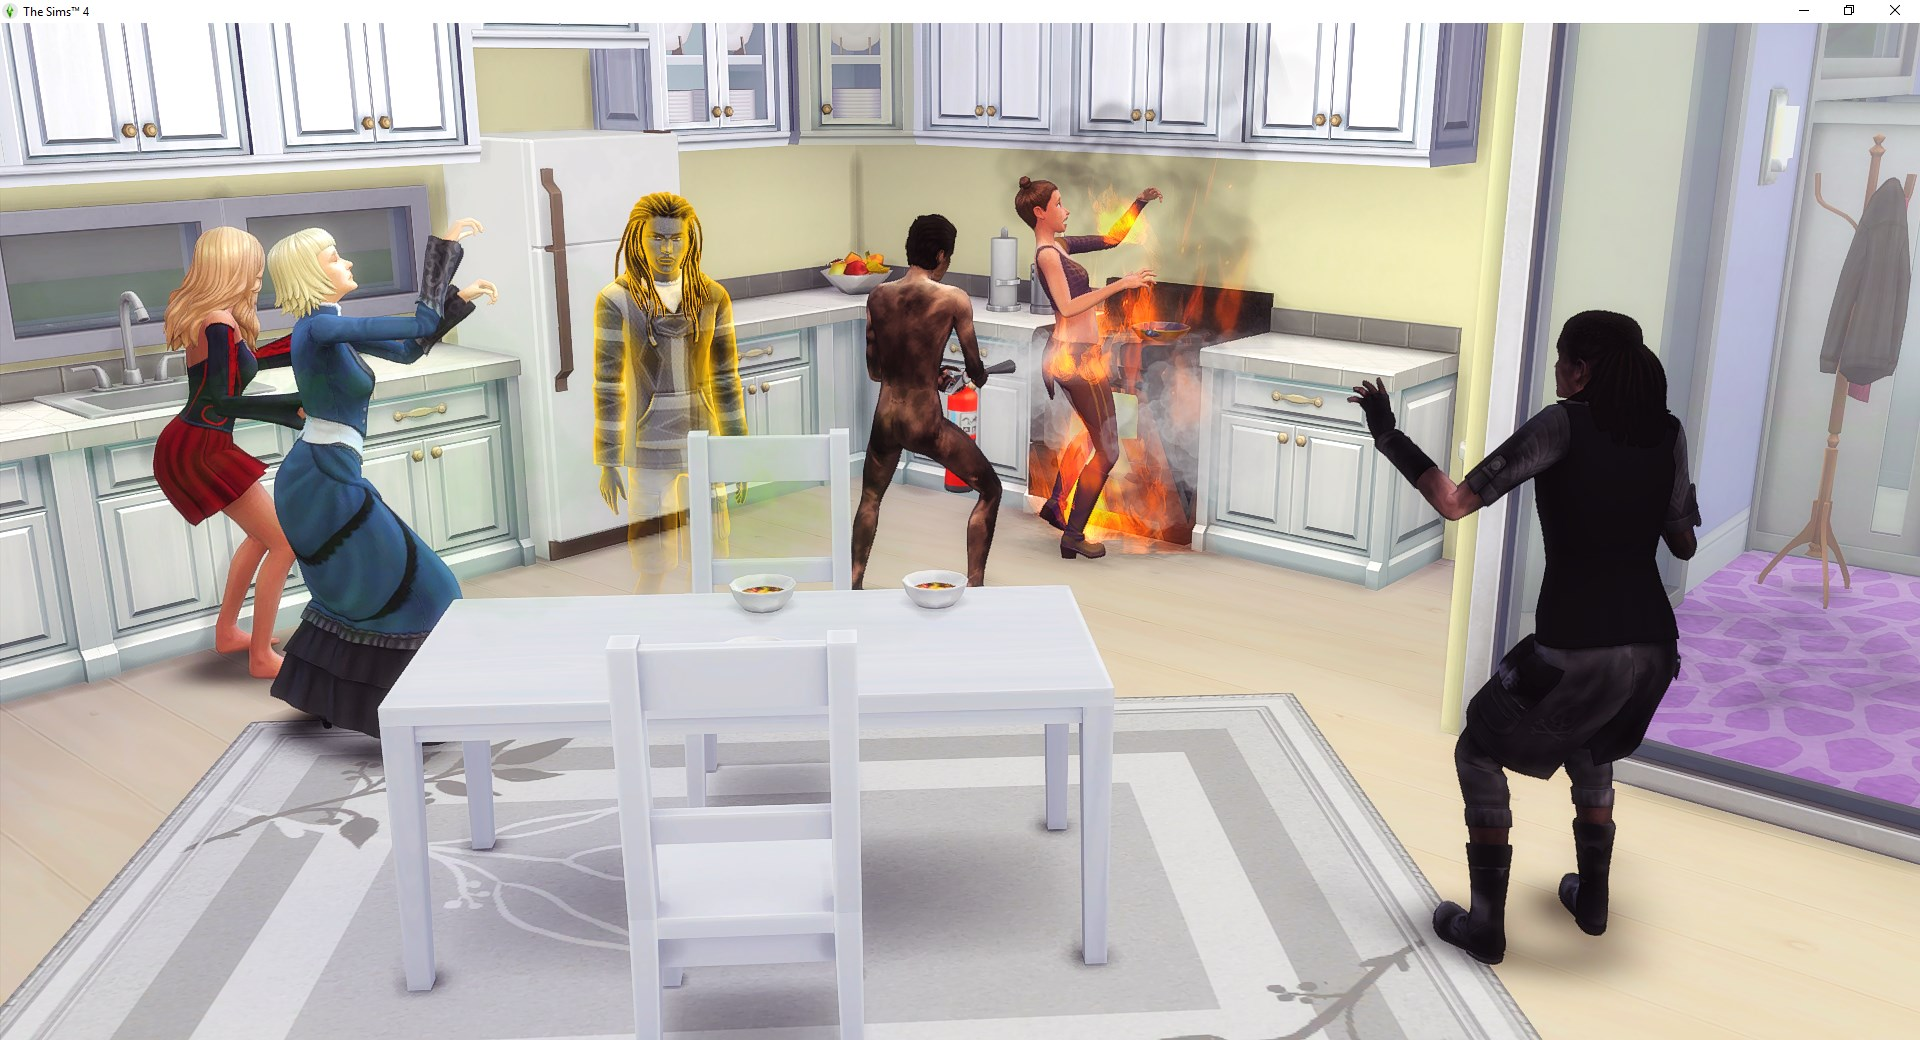 2019-10-23 14_42_11-The Sims™ 4